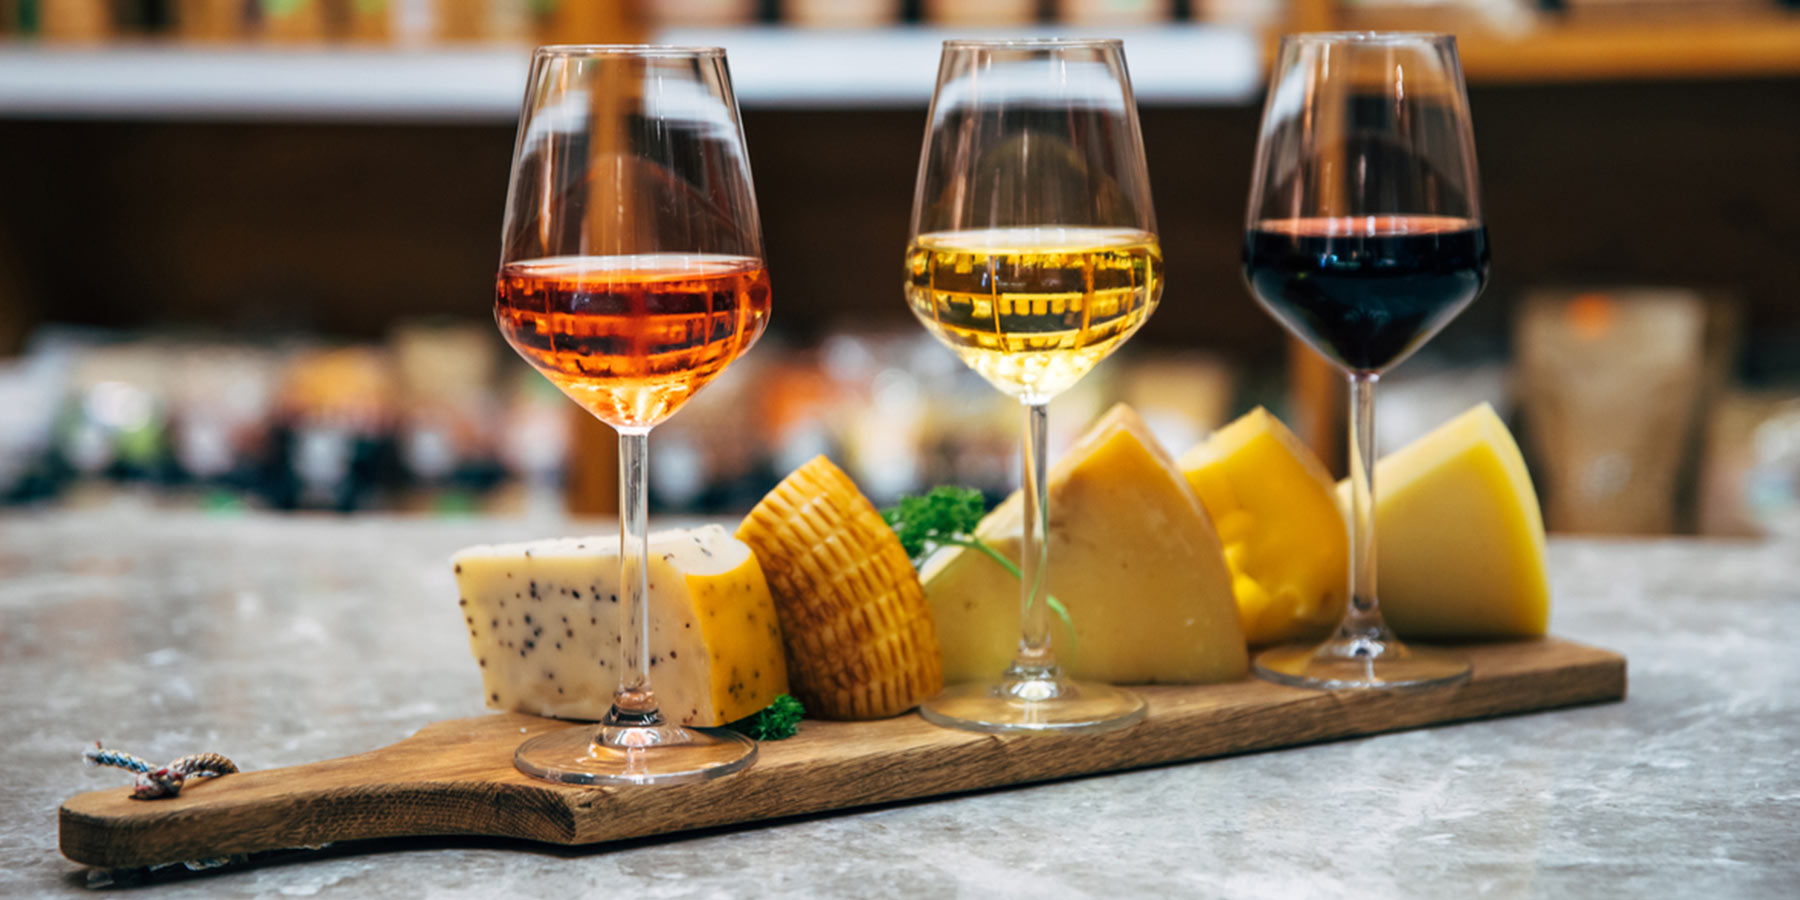 Dietary Fats Interact with Grape Tannins to Affect Wine Taste